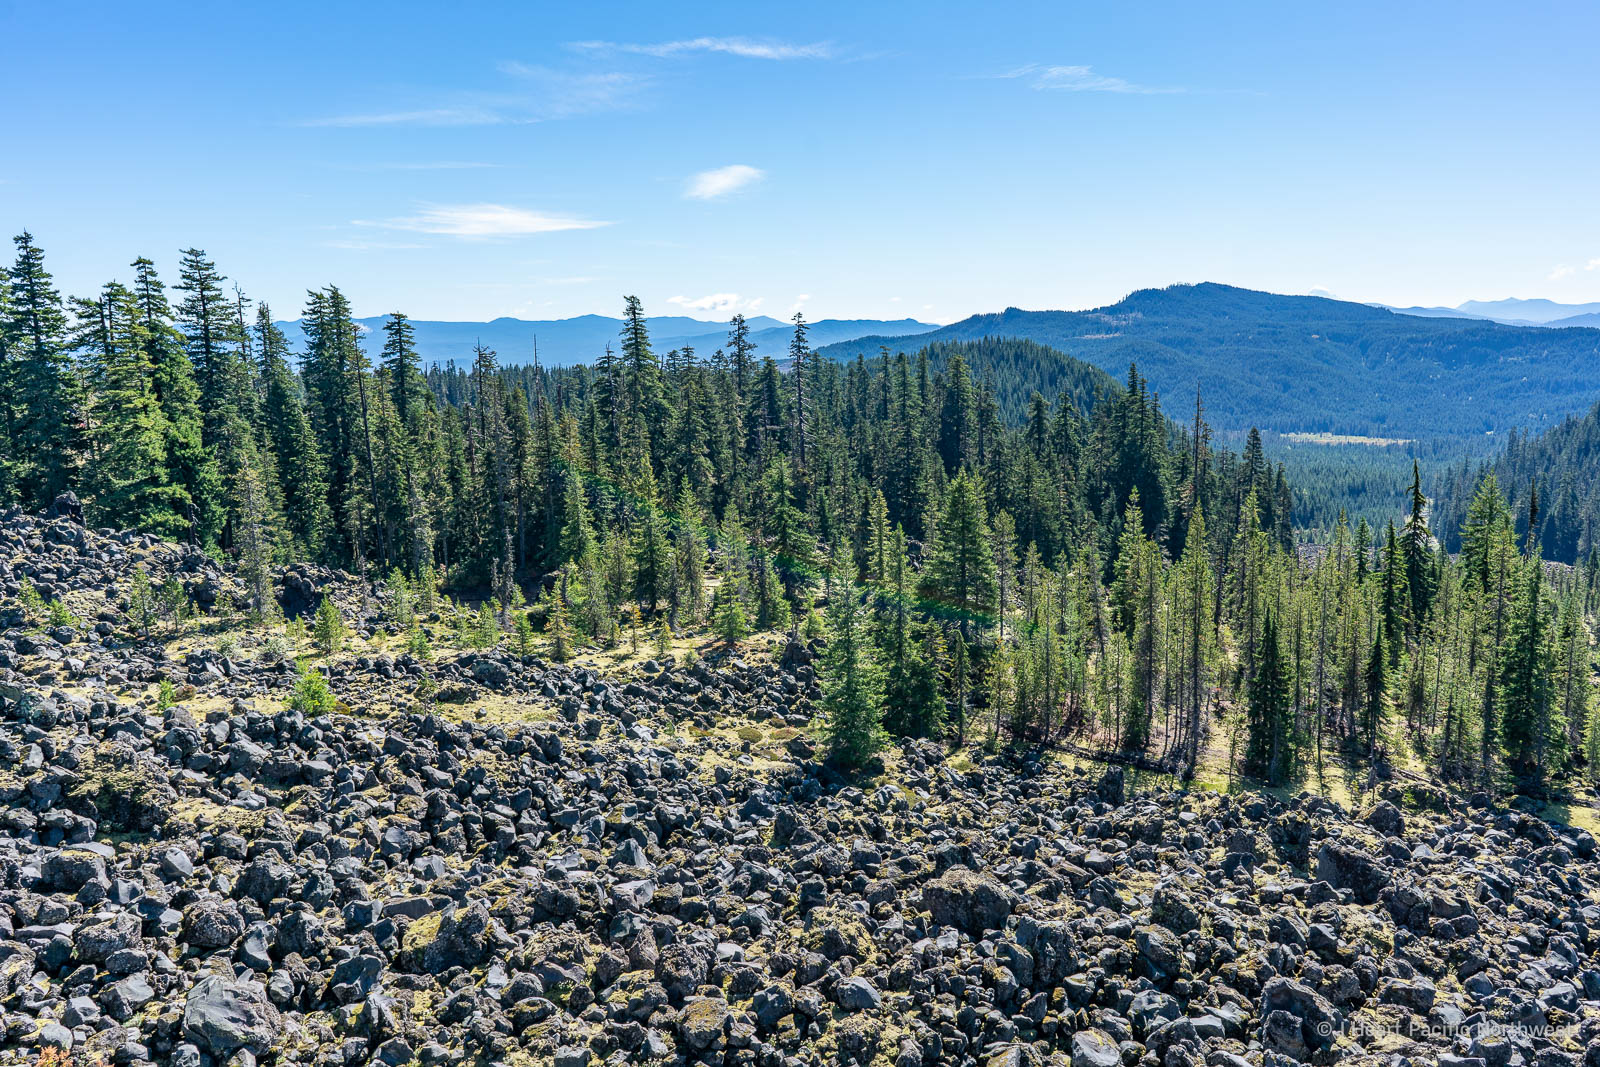 Hiking at Mount St Helens - June Lake & the Worm Flows lava fields